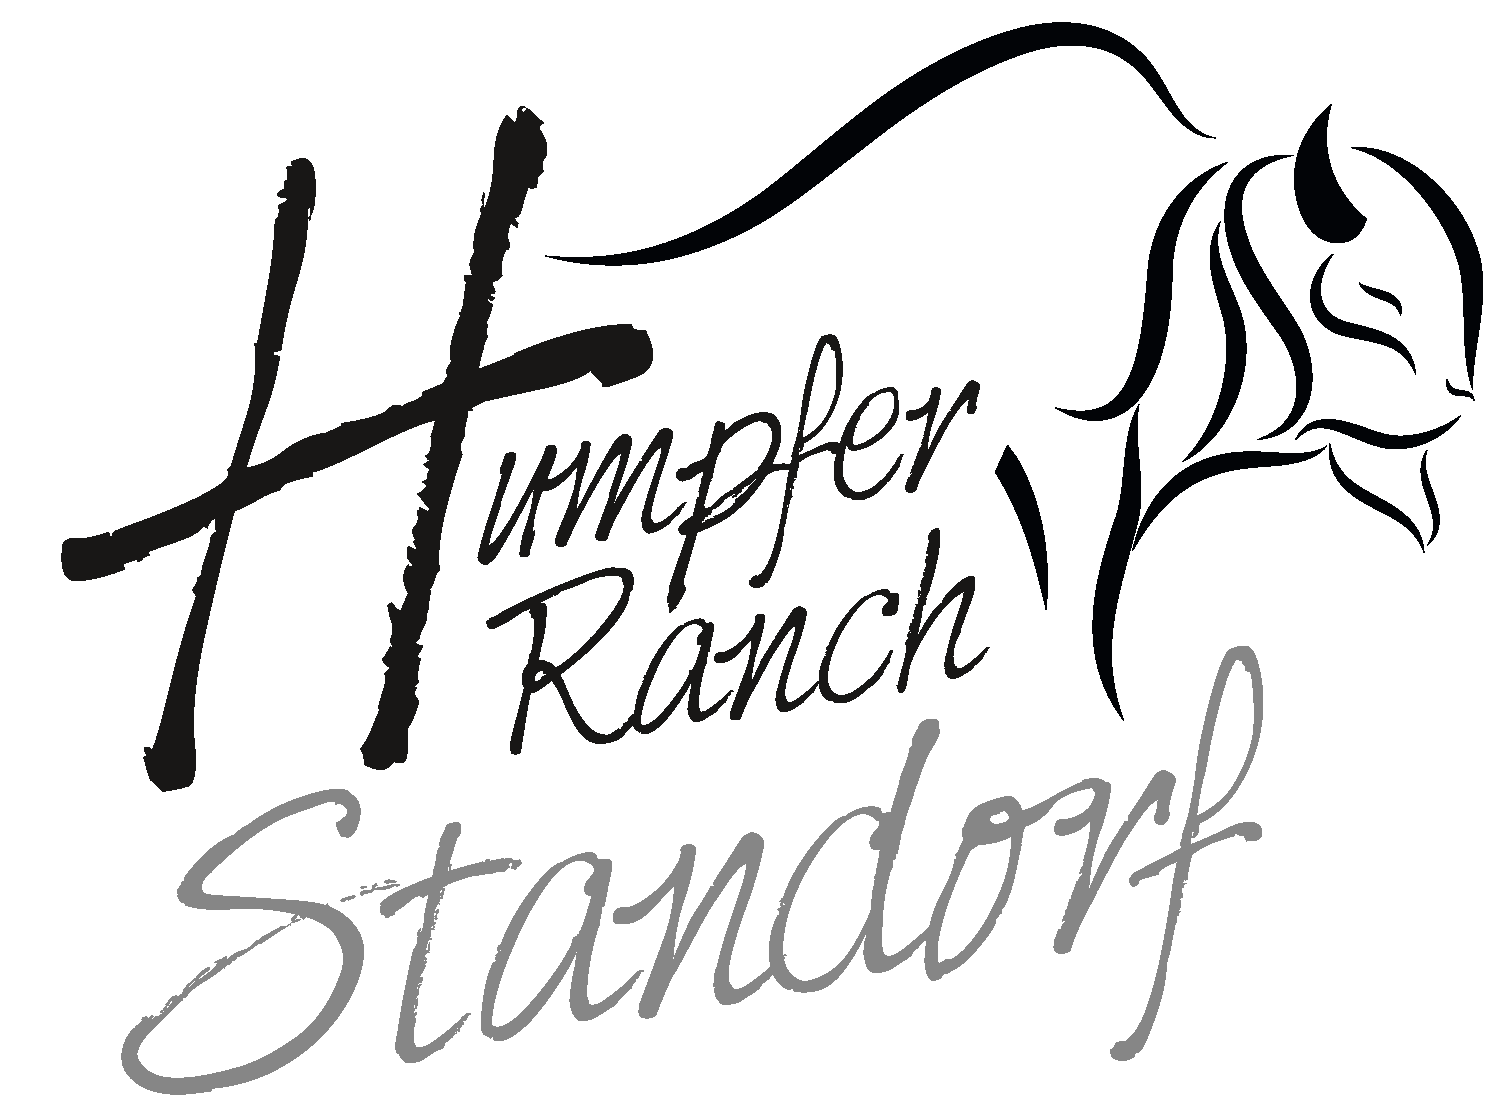 Humpferranch